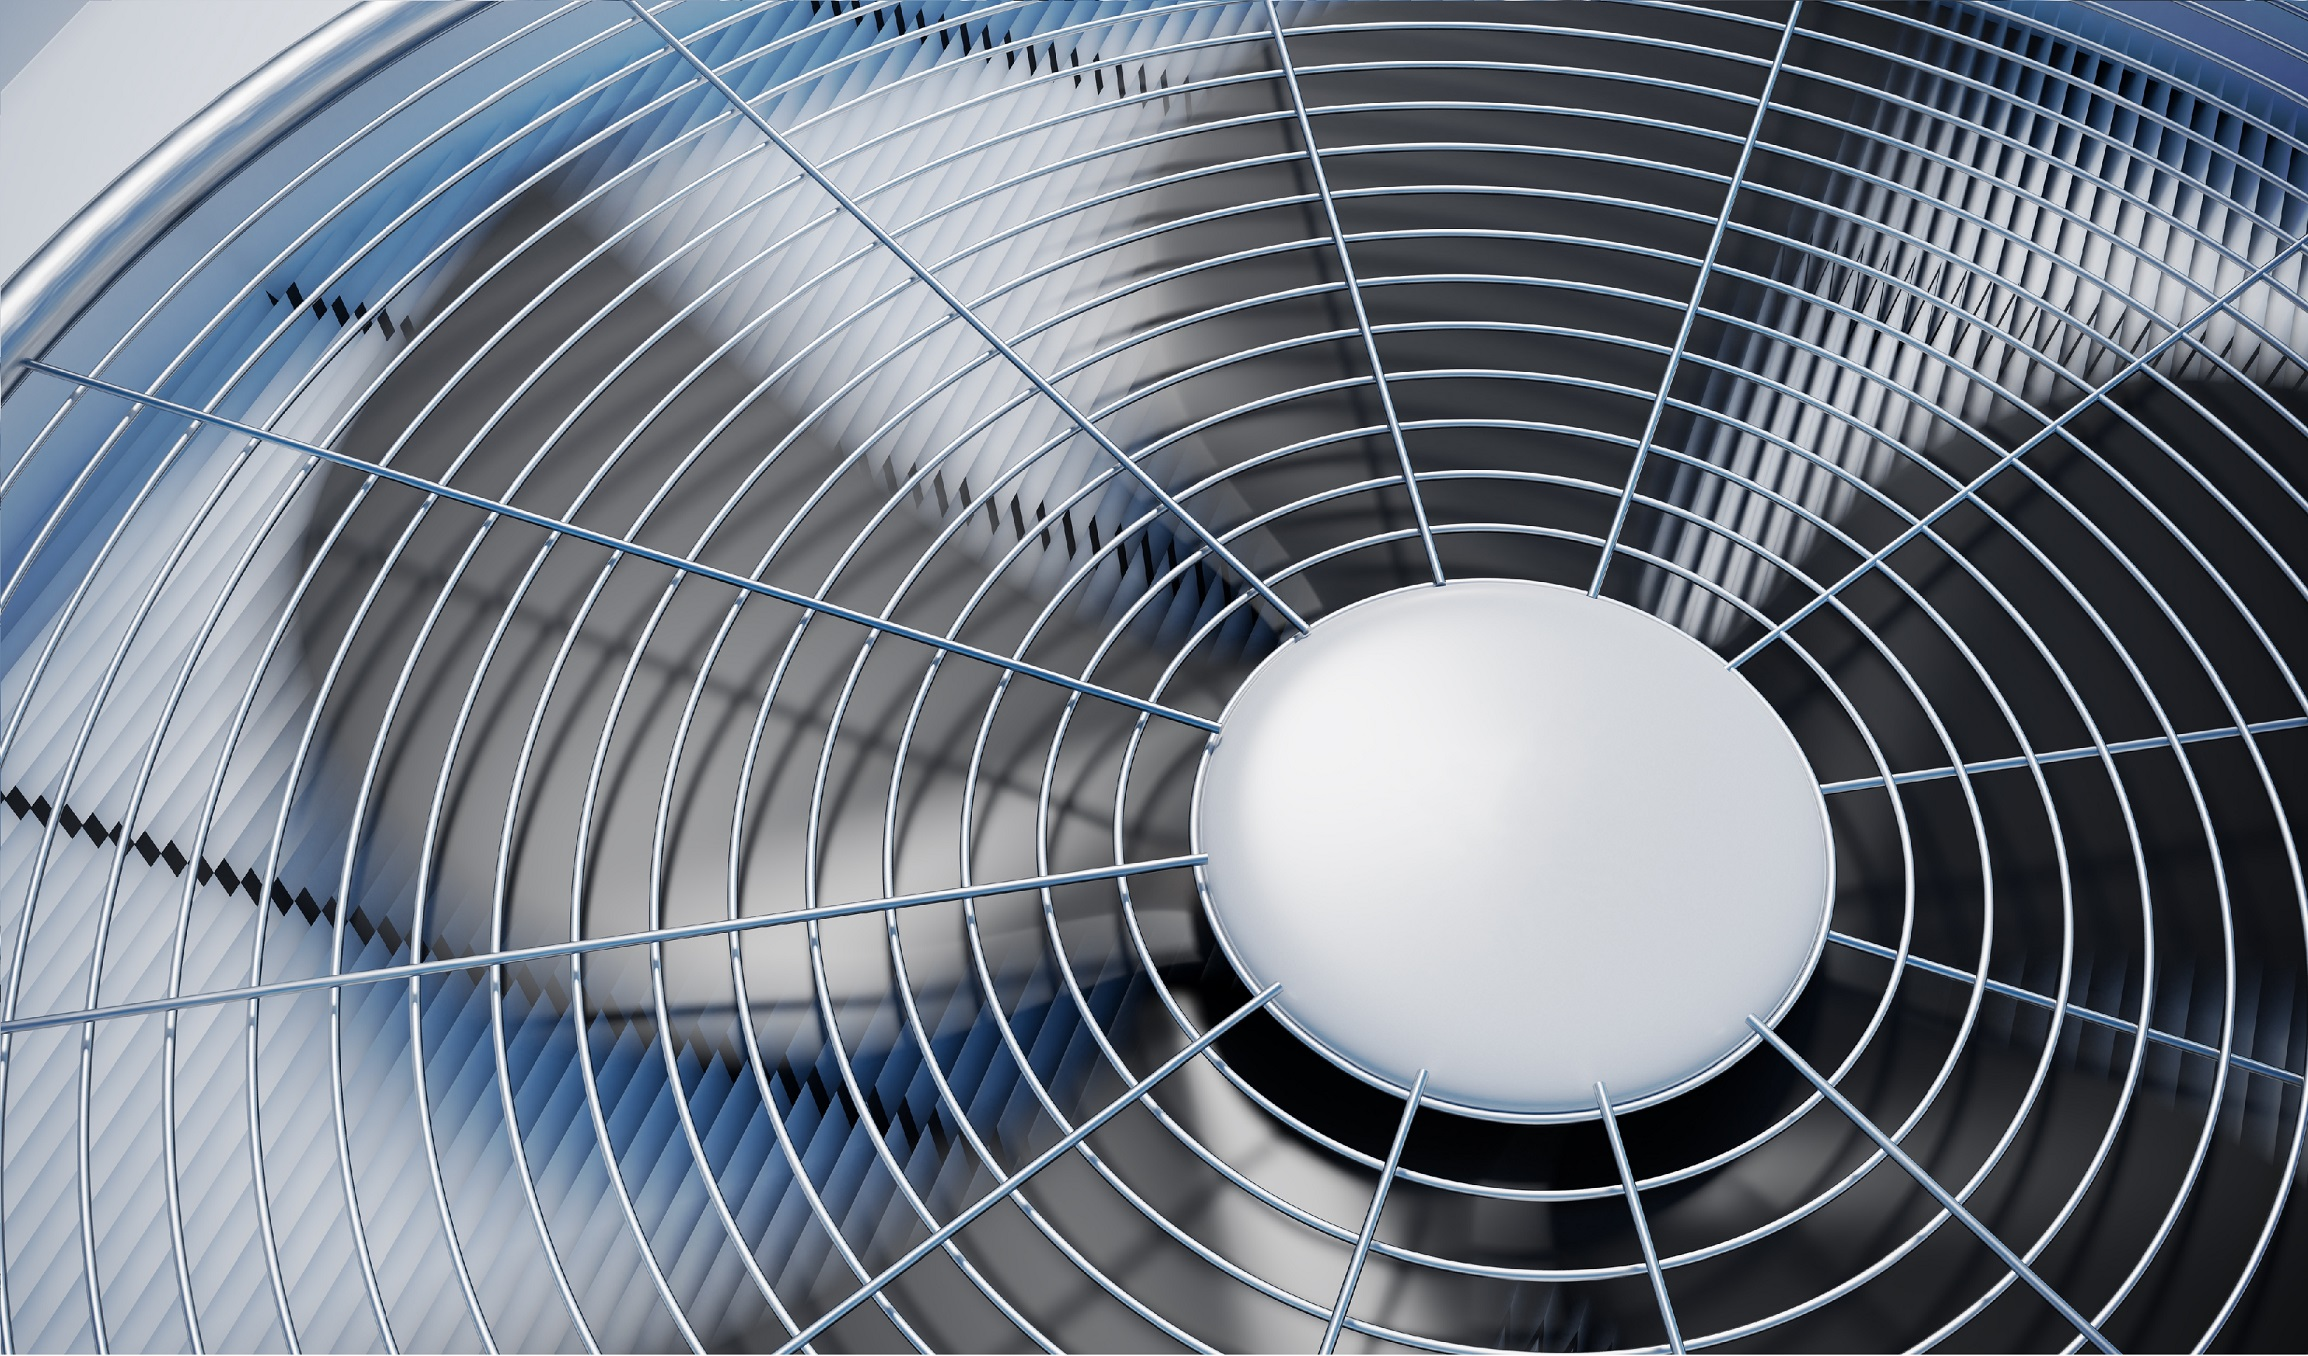 South Jersey AC system close-up